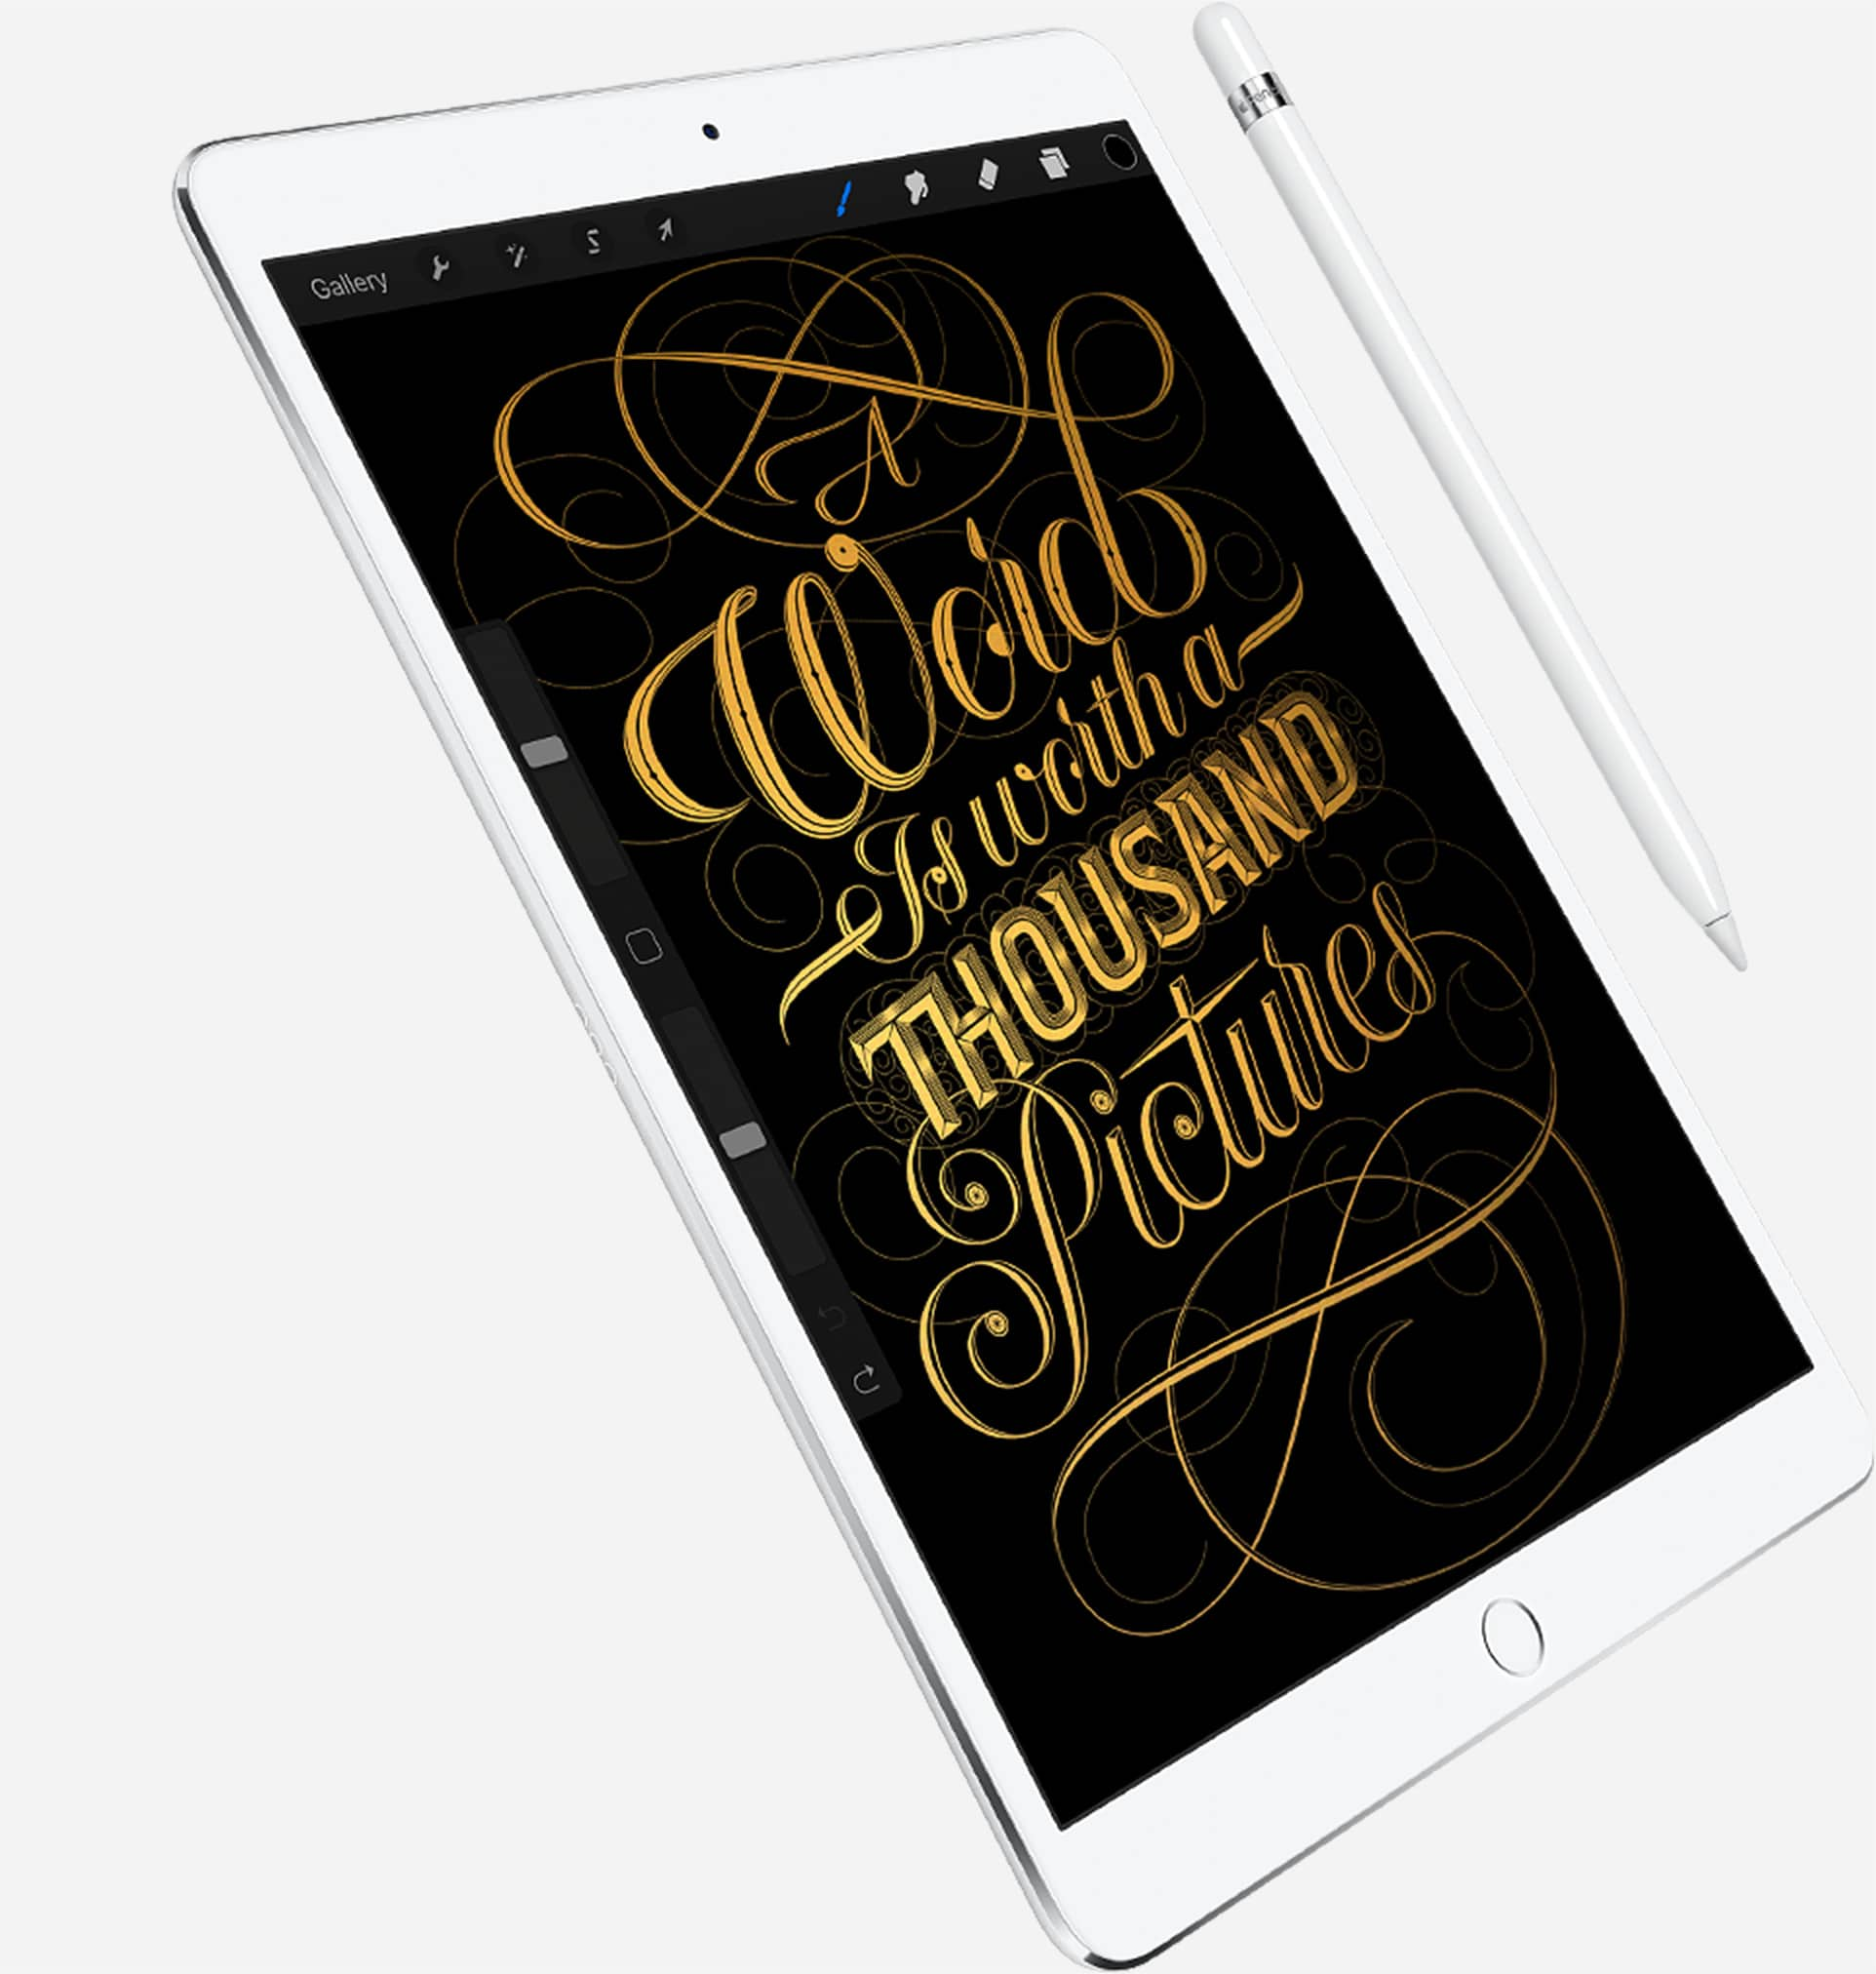 Apple Ipad Pro 105 Inch Price Features And Specs Att 512gb New Gold Wifi Only Now Even Sharper